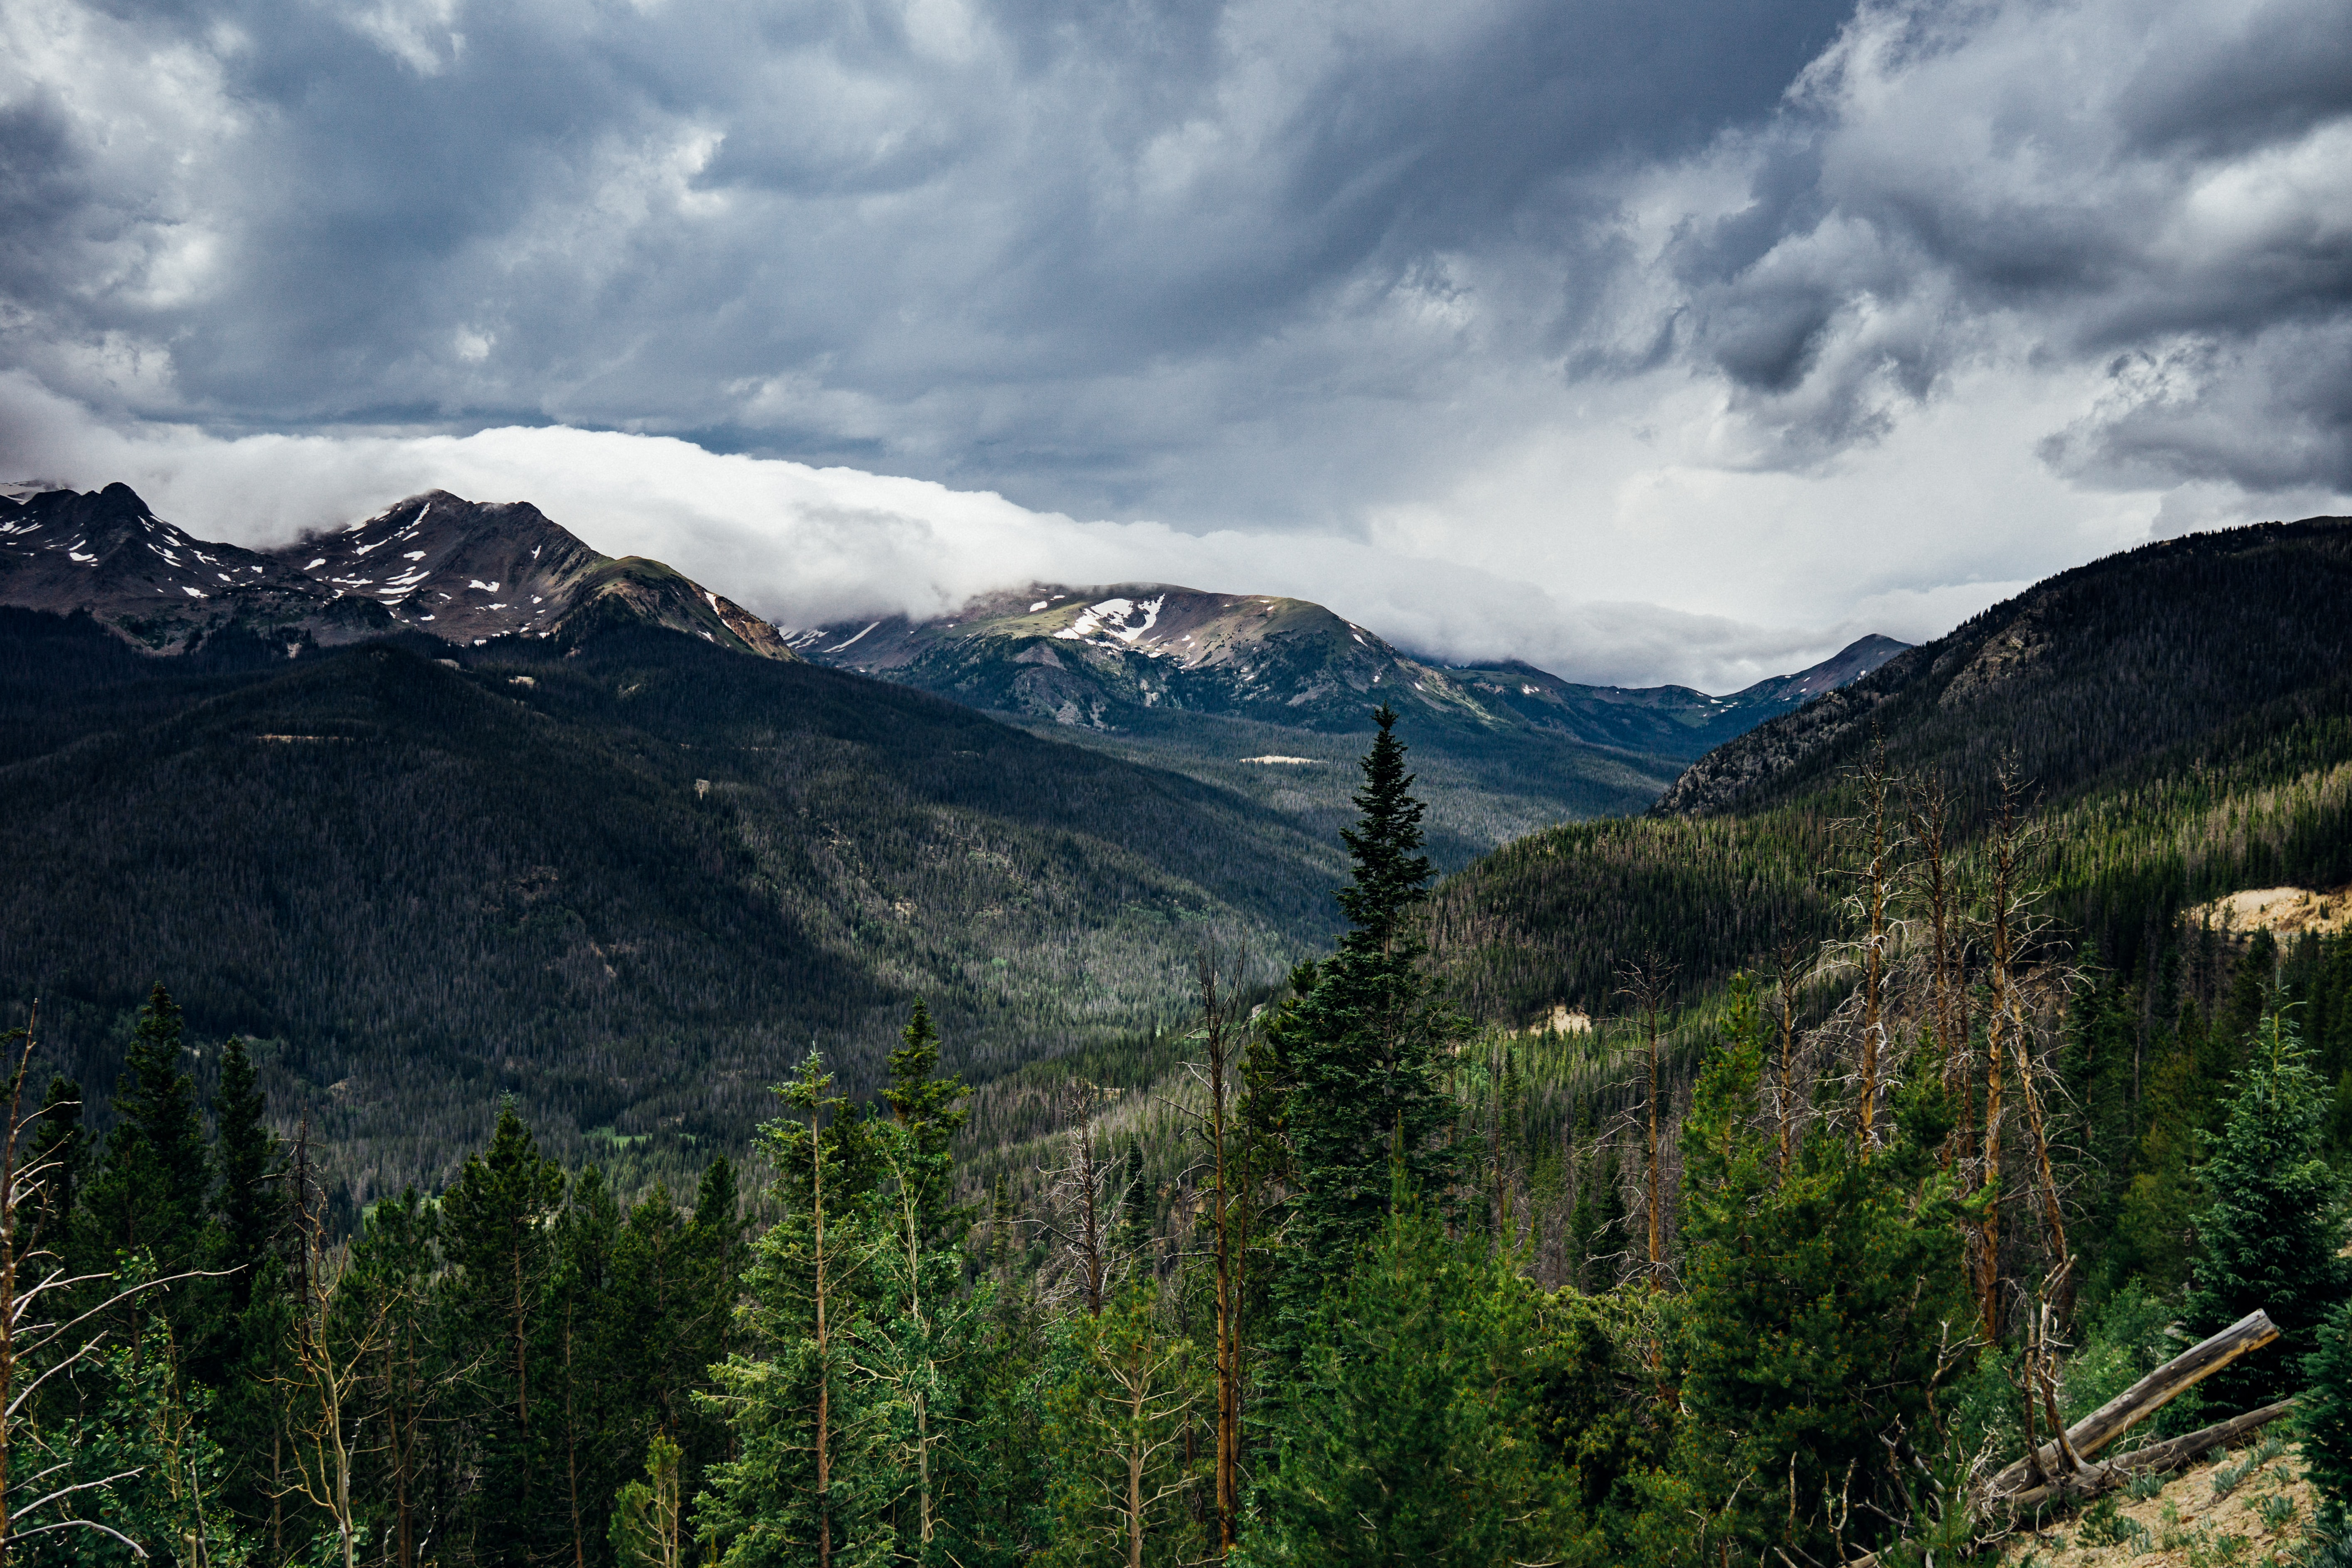 mountain and green tress under cloudy sky